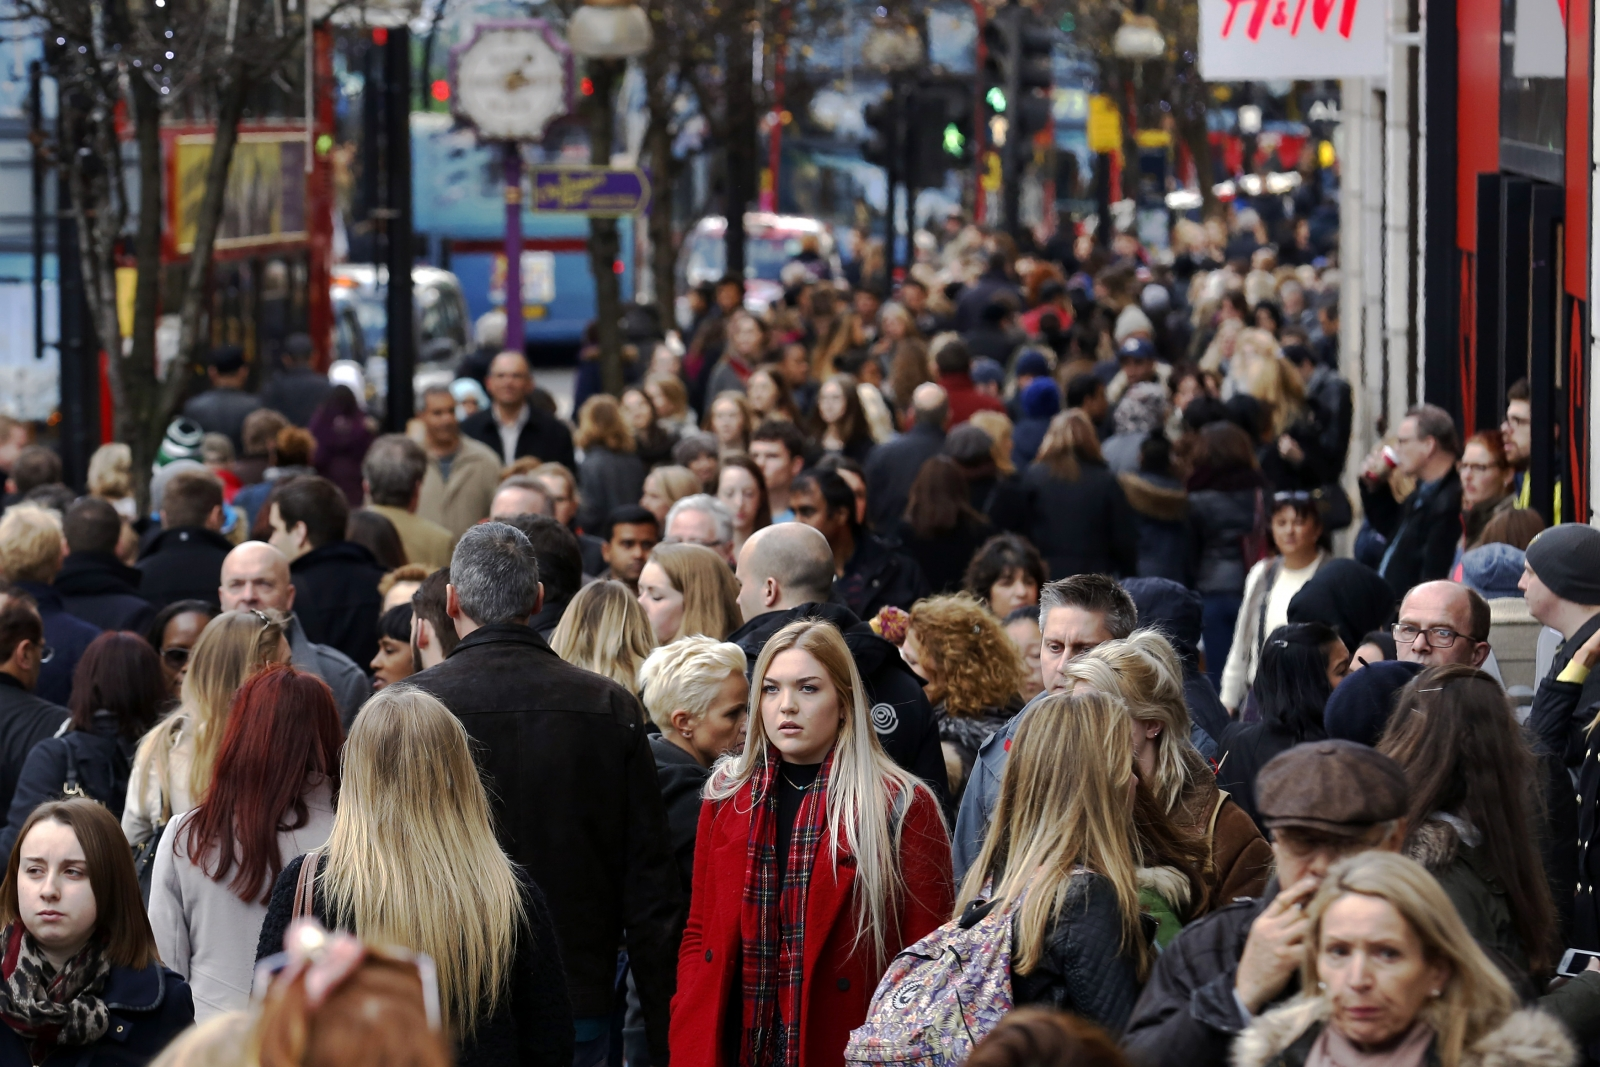 Shoppers in the UK